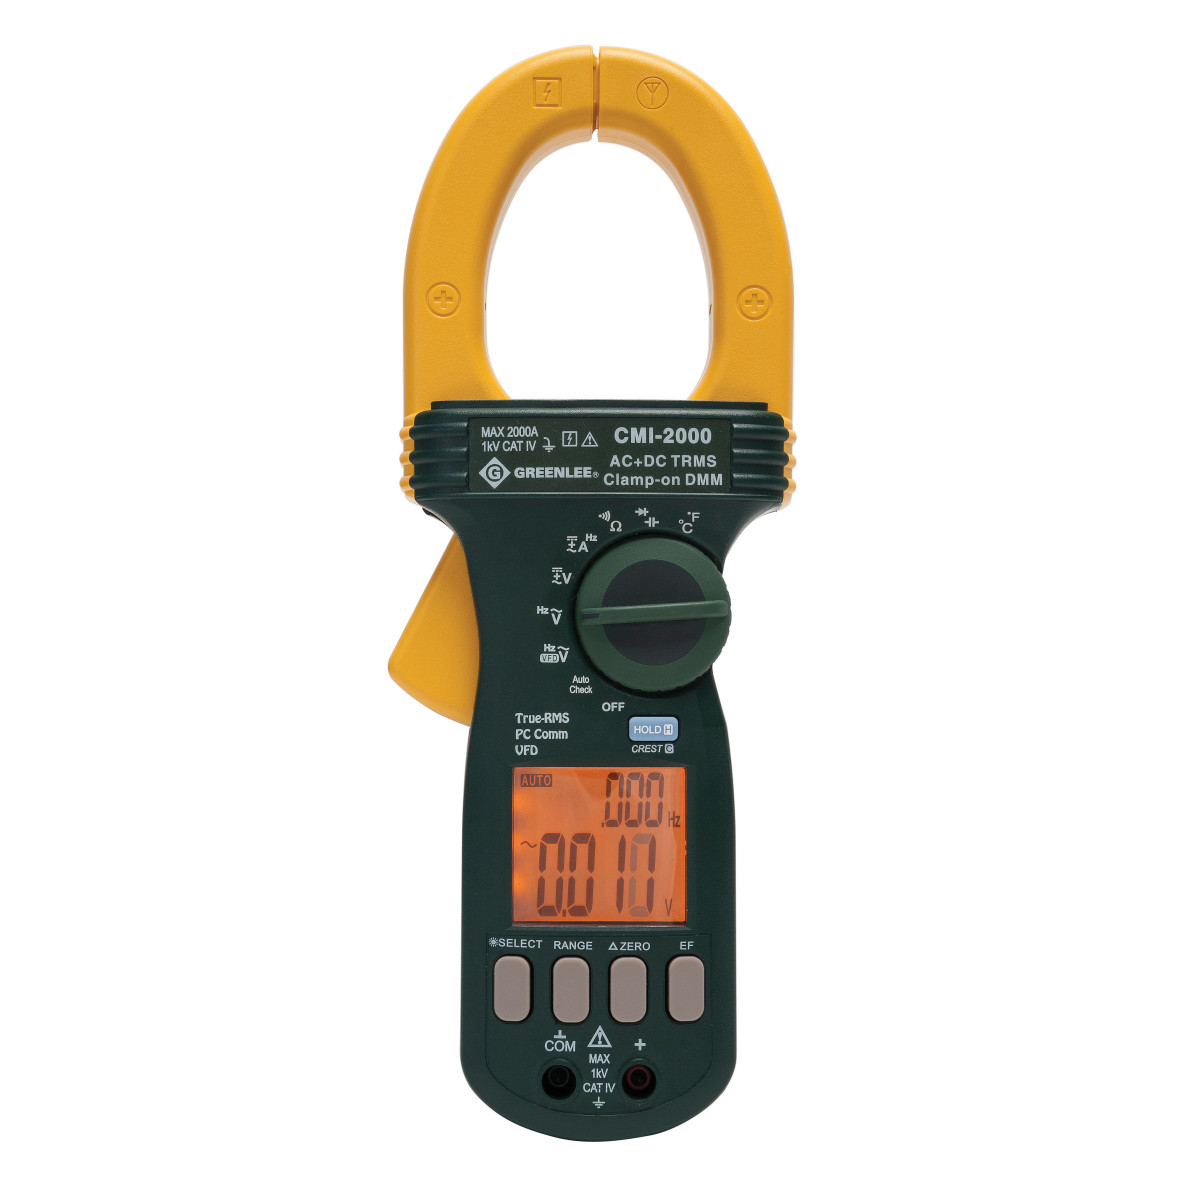 Greenlee CMI-2000 CLAMP METER TRMS 2000A AC